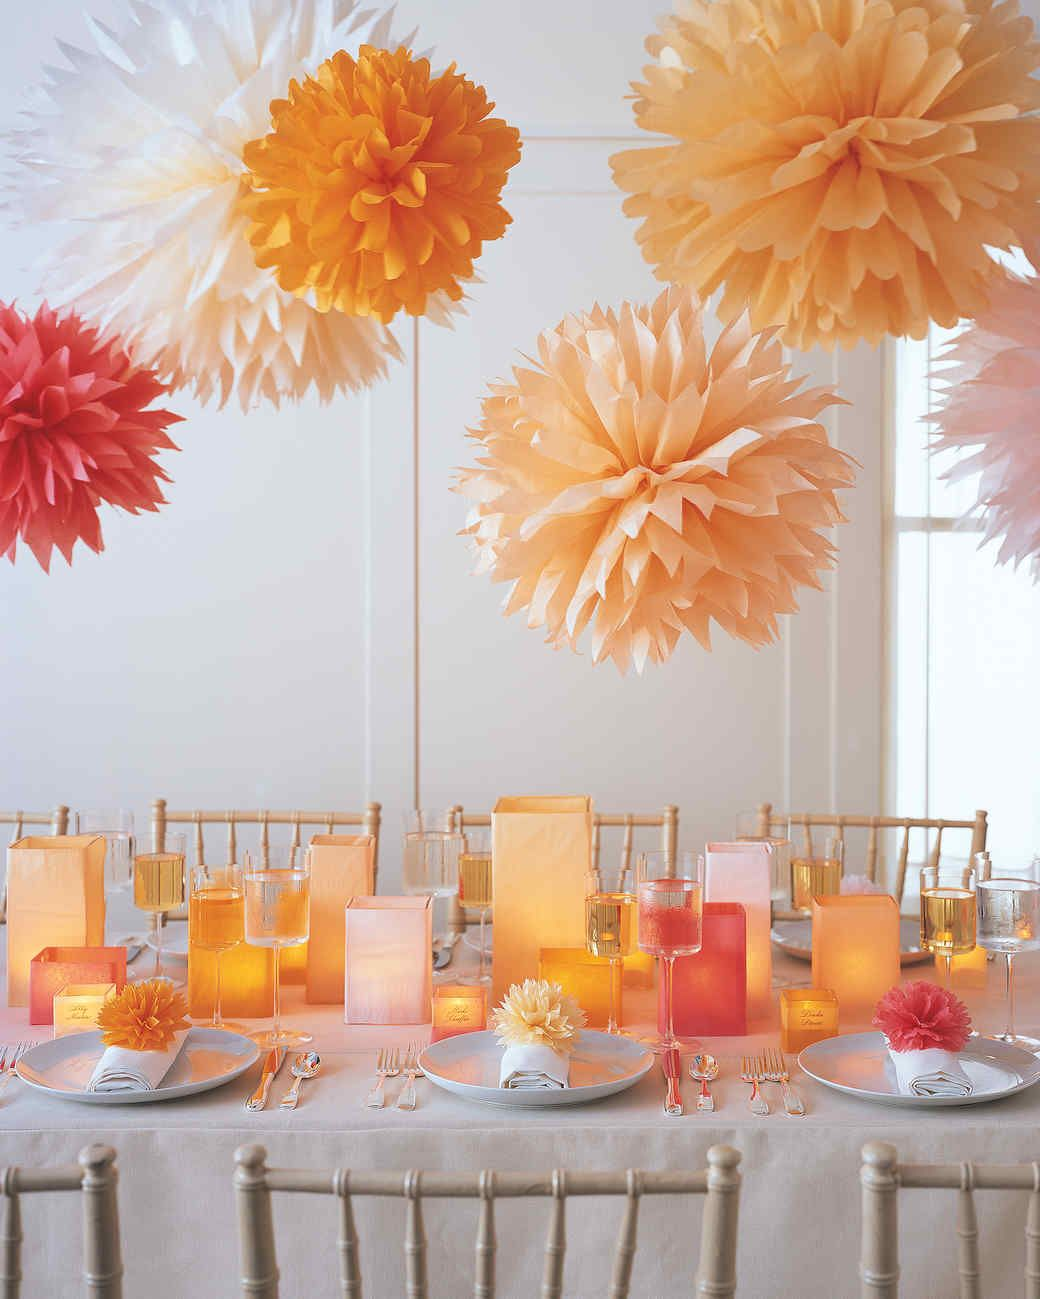 Pom-Poms and Luminarias   Martha Stewart Living — Dahlia-like pom-poms appear to float in the air, imparting a cheerful radiance to a rehearsal dinner, bridal shower, or casual reception.